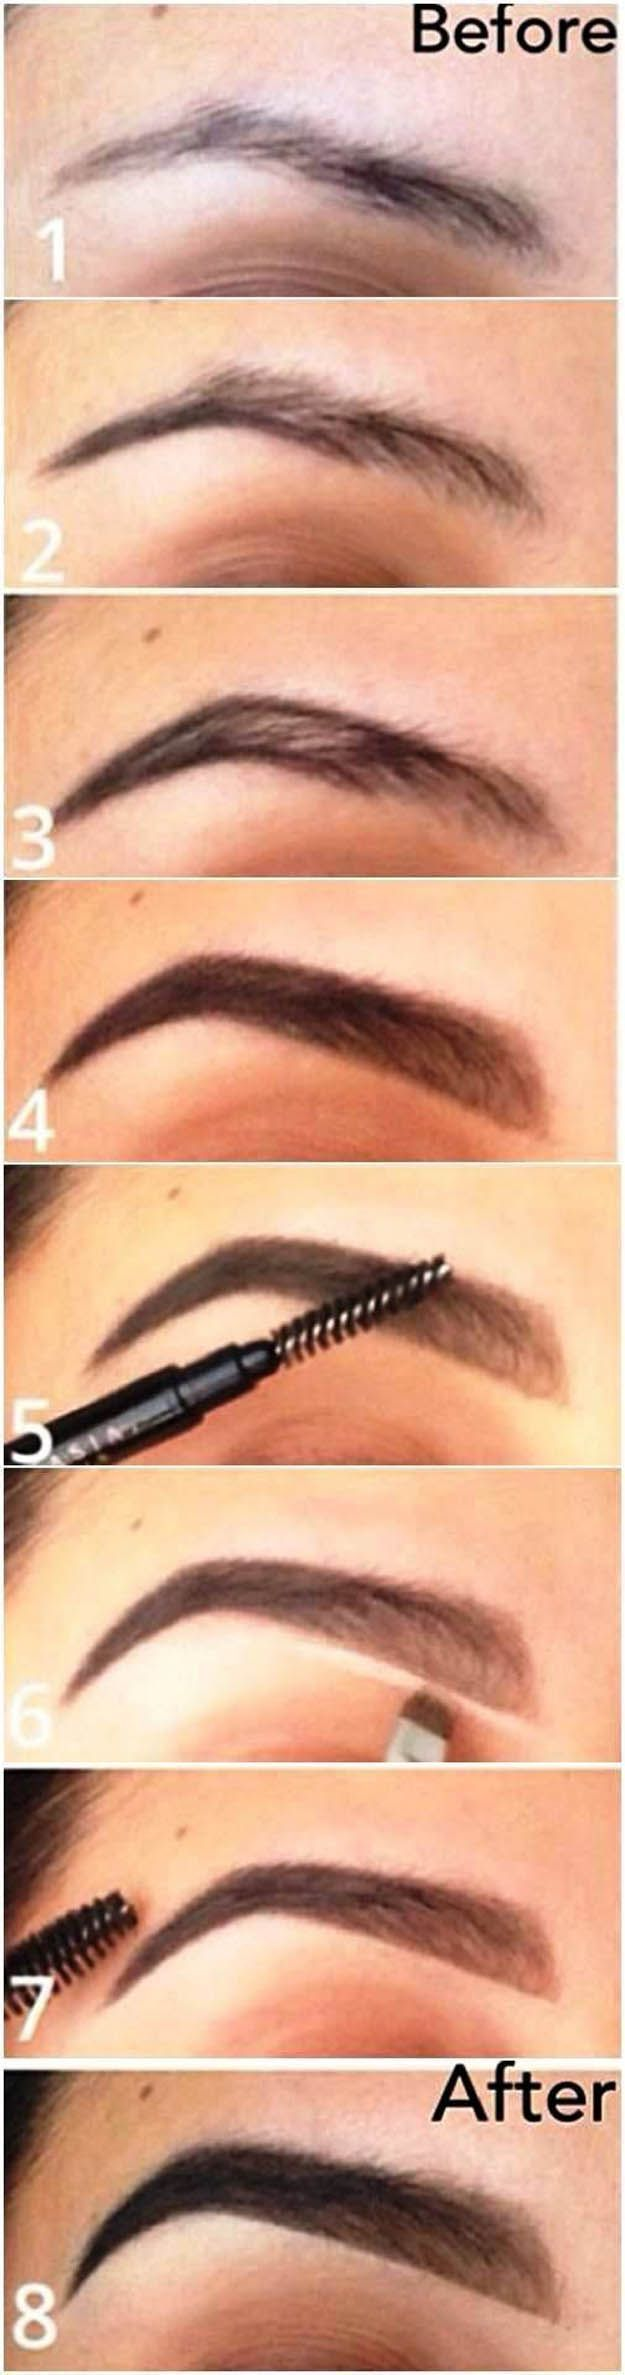 How to Fill in Your Brows   Eyebrow Makeup Tutorials for Beginners by Makeup Tutorials at http://makeuptutorials.com/makeup-tutorials-beauty-tips